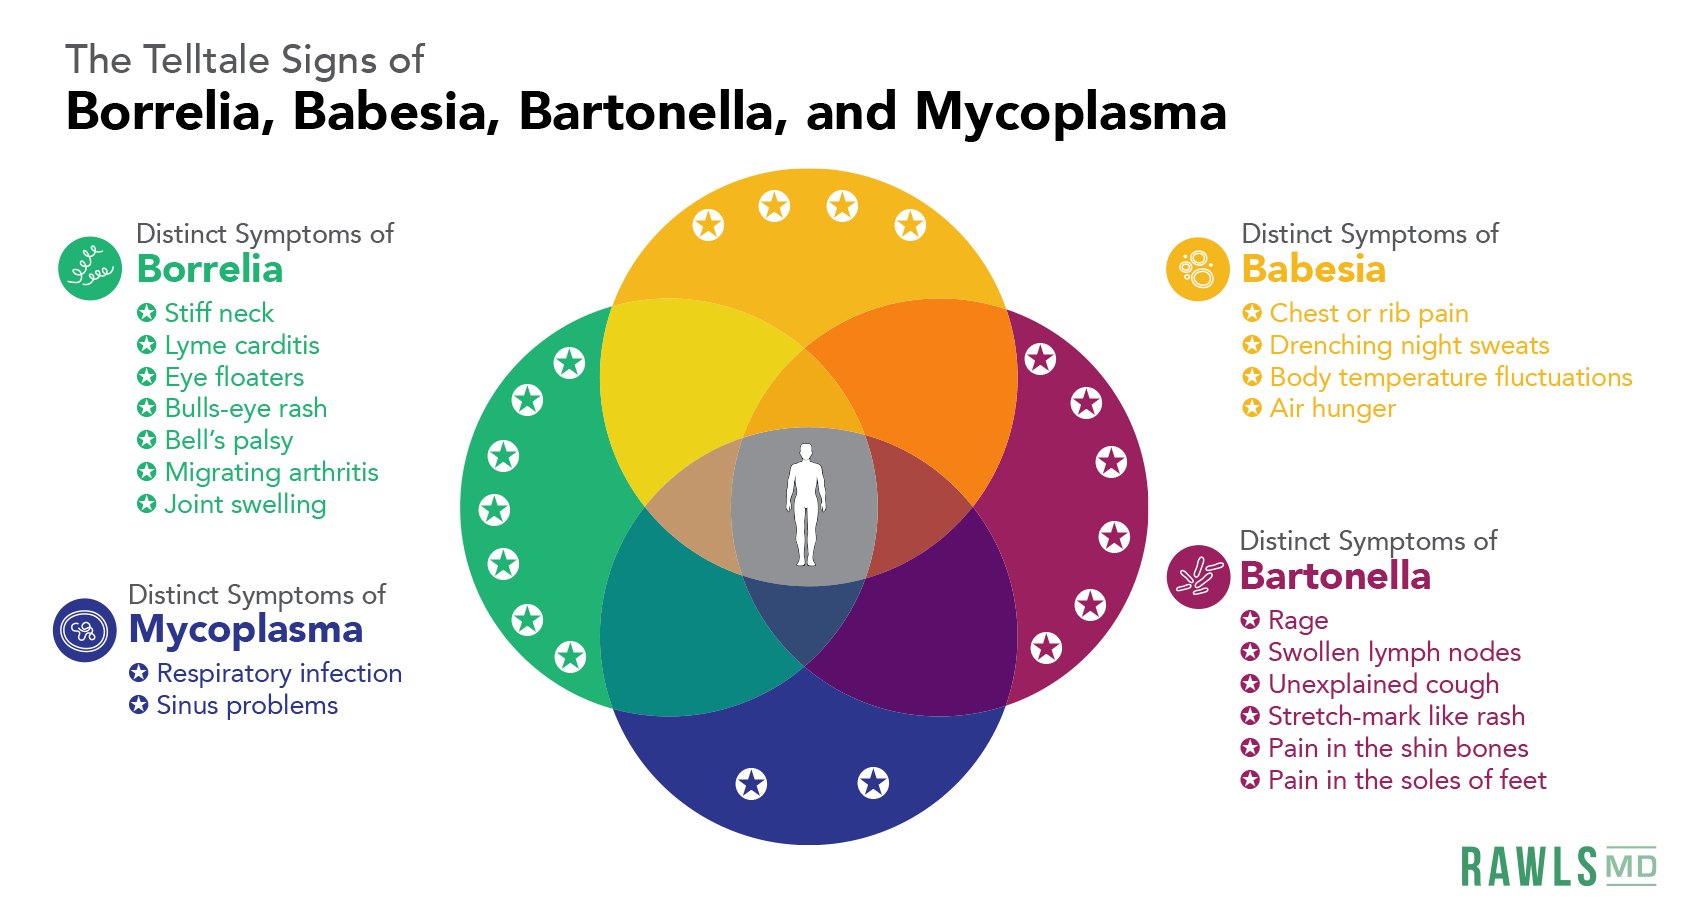 circle chart of telltale symptoms. Borrelia: stiff neck, lyme carditis, eye floaters, bulls eye rash, bells palsy, migrating arthritis, joint welling. Mycoplasma: respiratory infection, sinus problems. Babesia: chest or rib pain, drenching night sweats, body temperature fluctuations, air hunger. Bartonella: rage, swollen lymph nodes, unexplained cough, stretch-mark like rash, pain in shins, pain in soles of feet